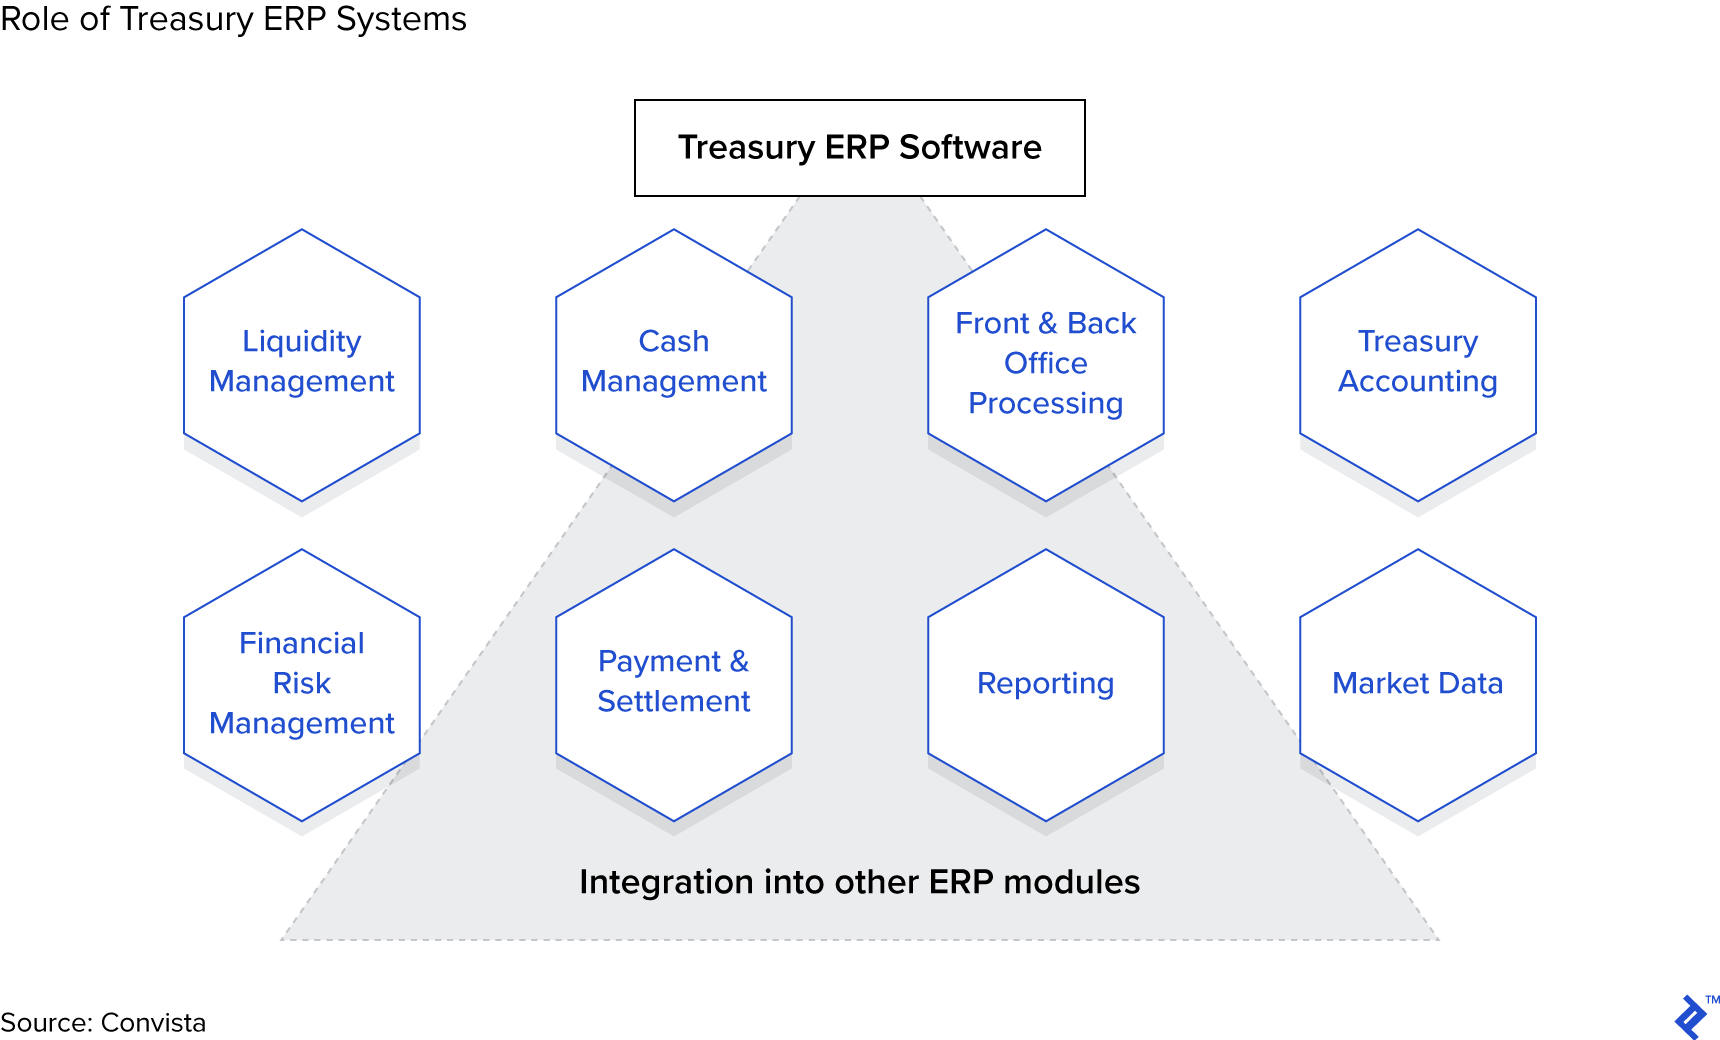 Treasury ERP system functionality requirements